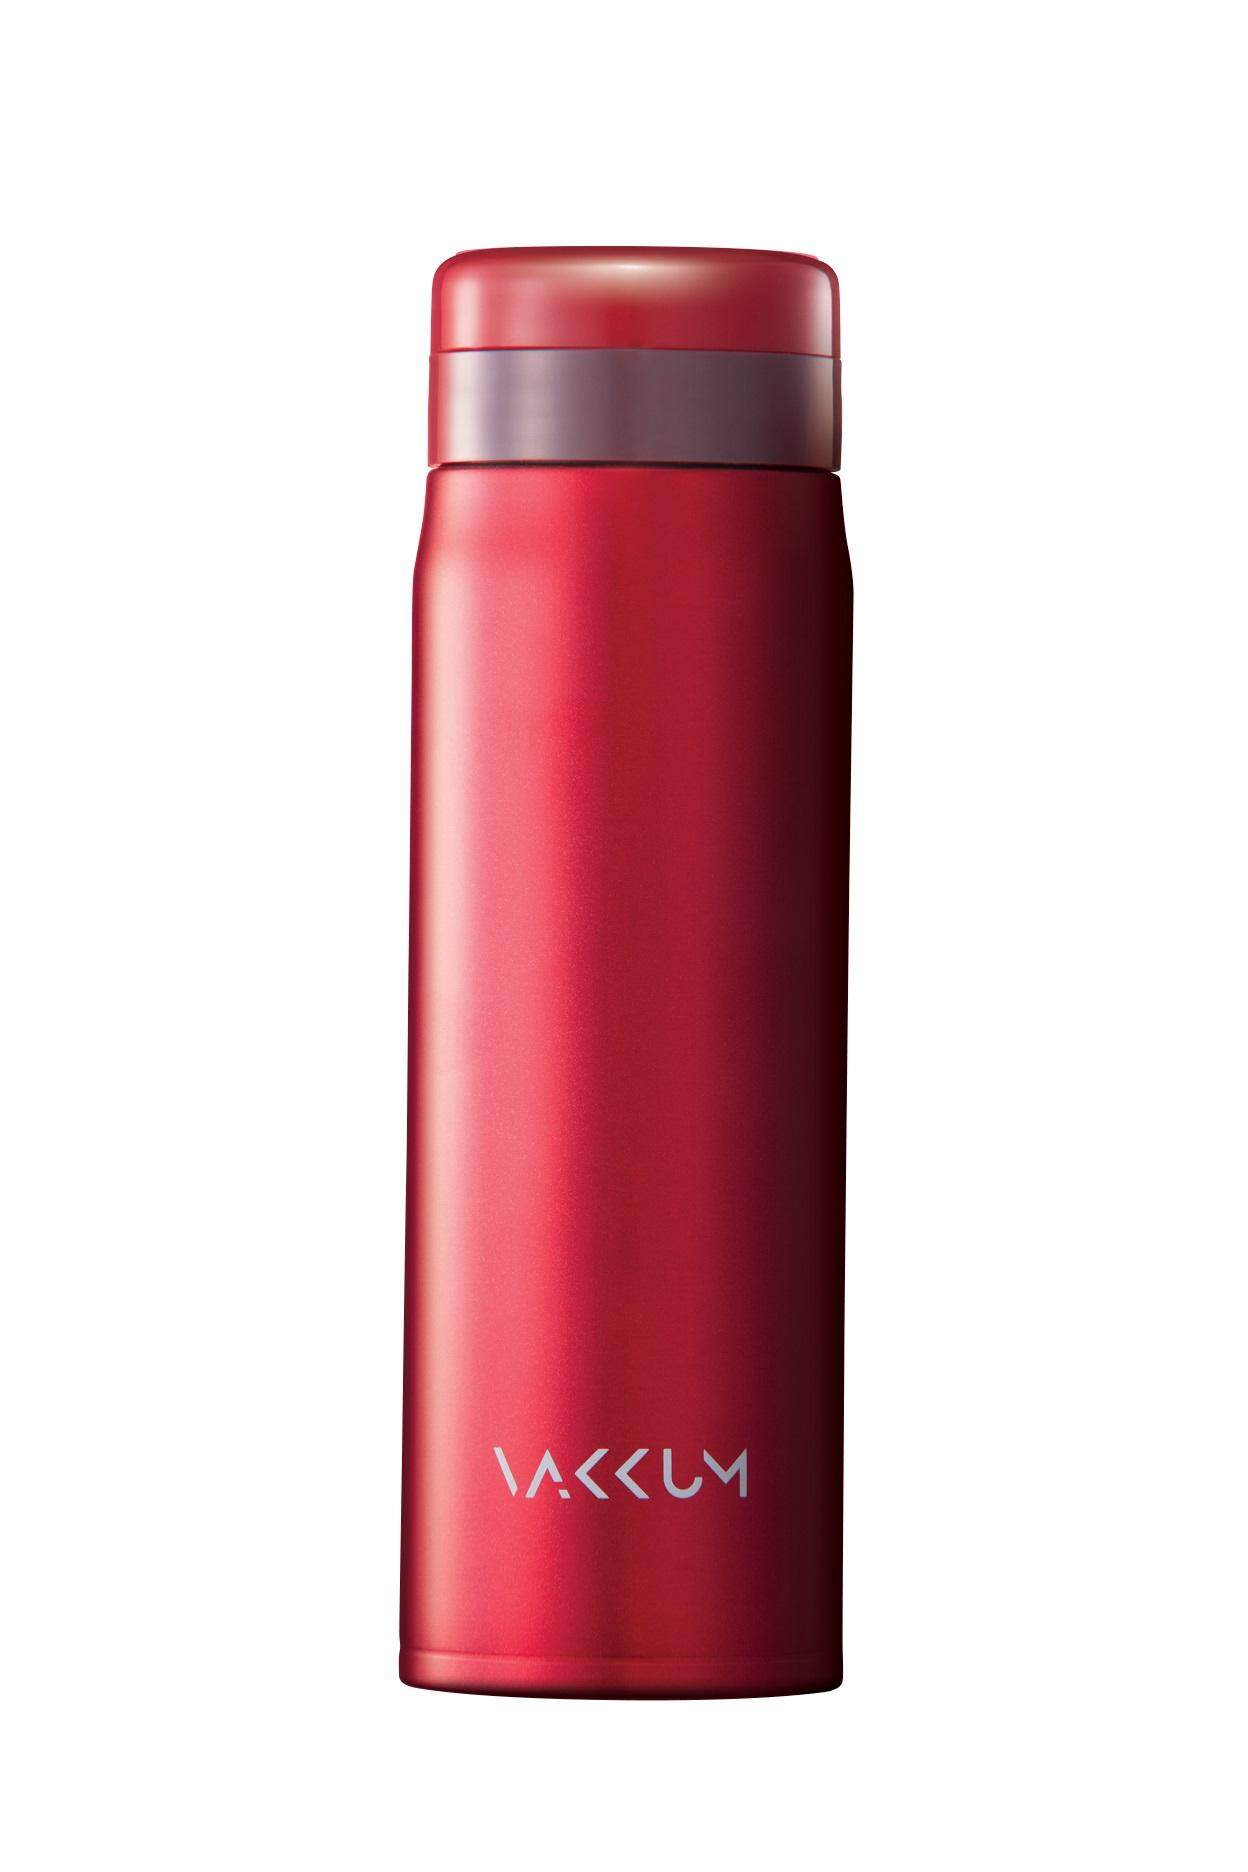 [LIVE] [OASIS SWISS] ANTI-BACTERIAL VAKKUM MADEL FLASK 600ML DOUBLE WALL S.S. RED